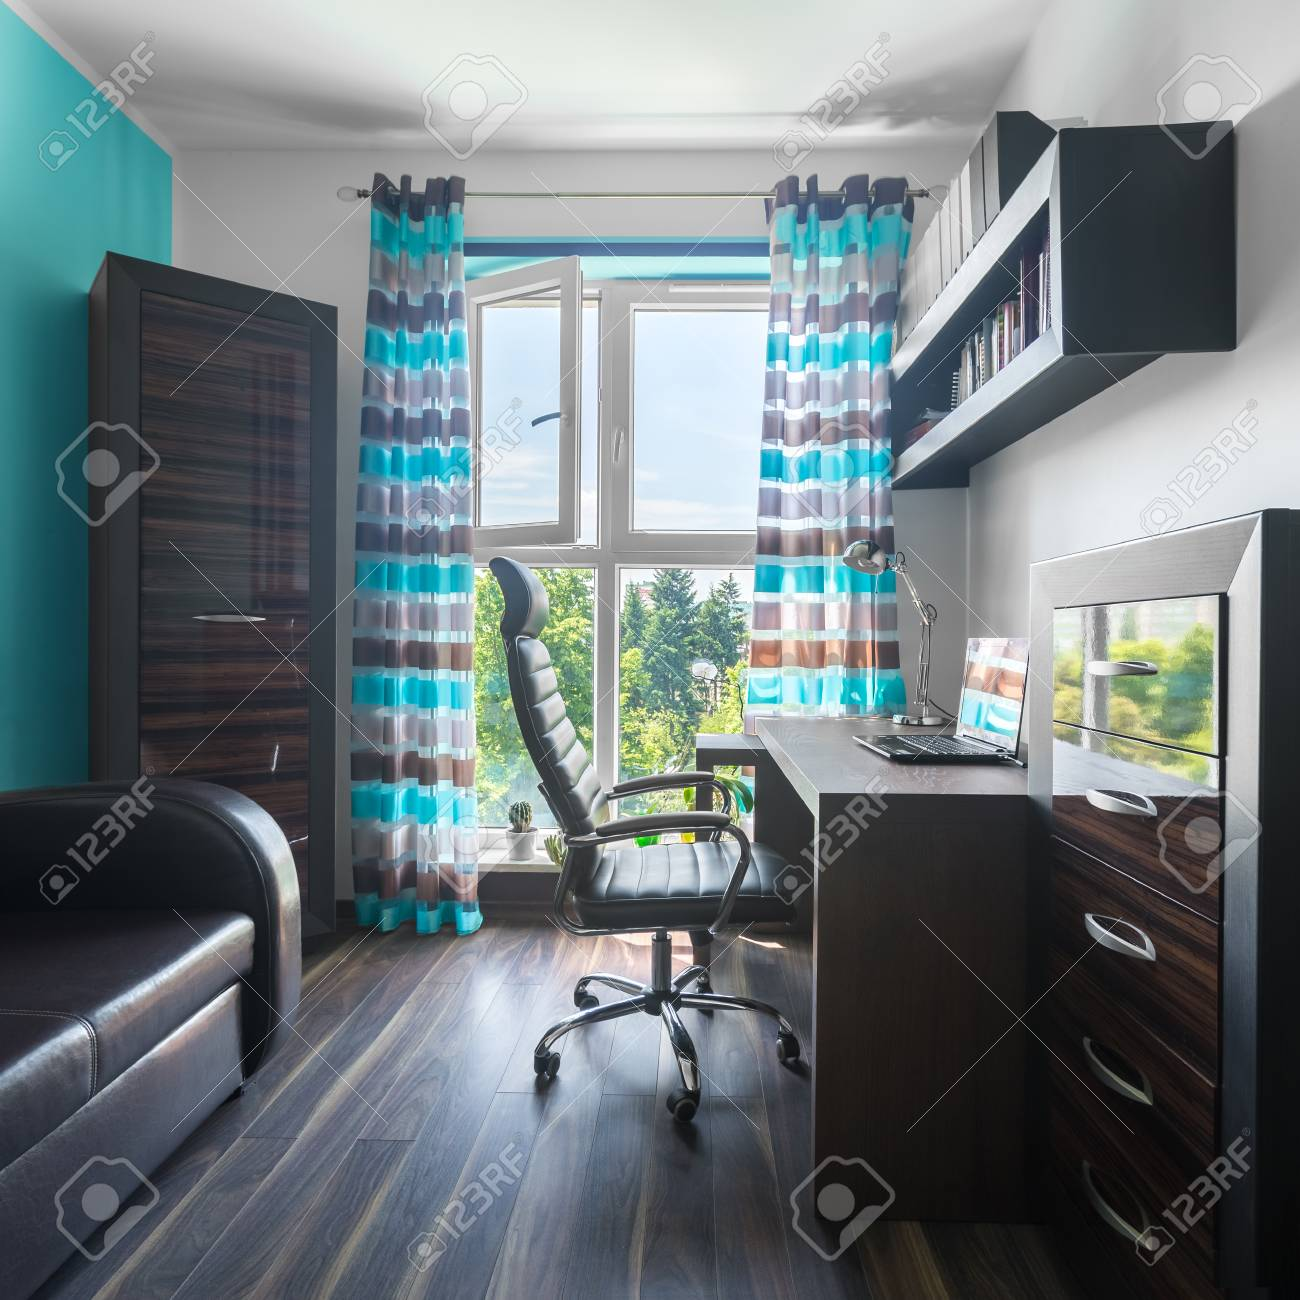 comfortable home office. Spacious Home Office With Brown Furniture, Leather Sofa And Comfortable Armchair In Modern Apartment Stock E